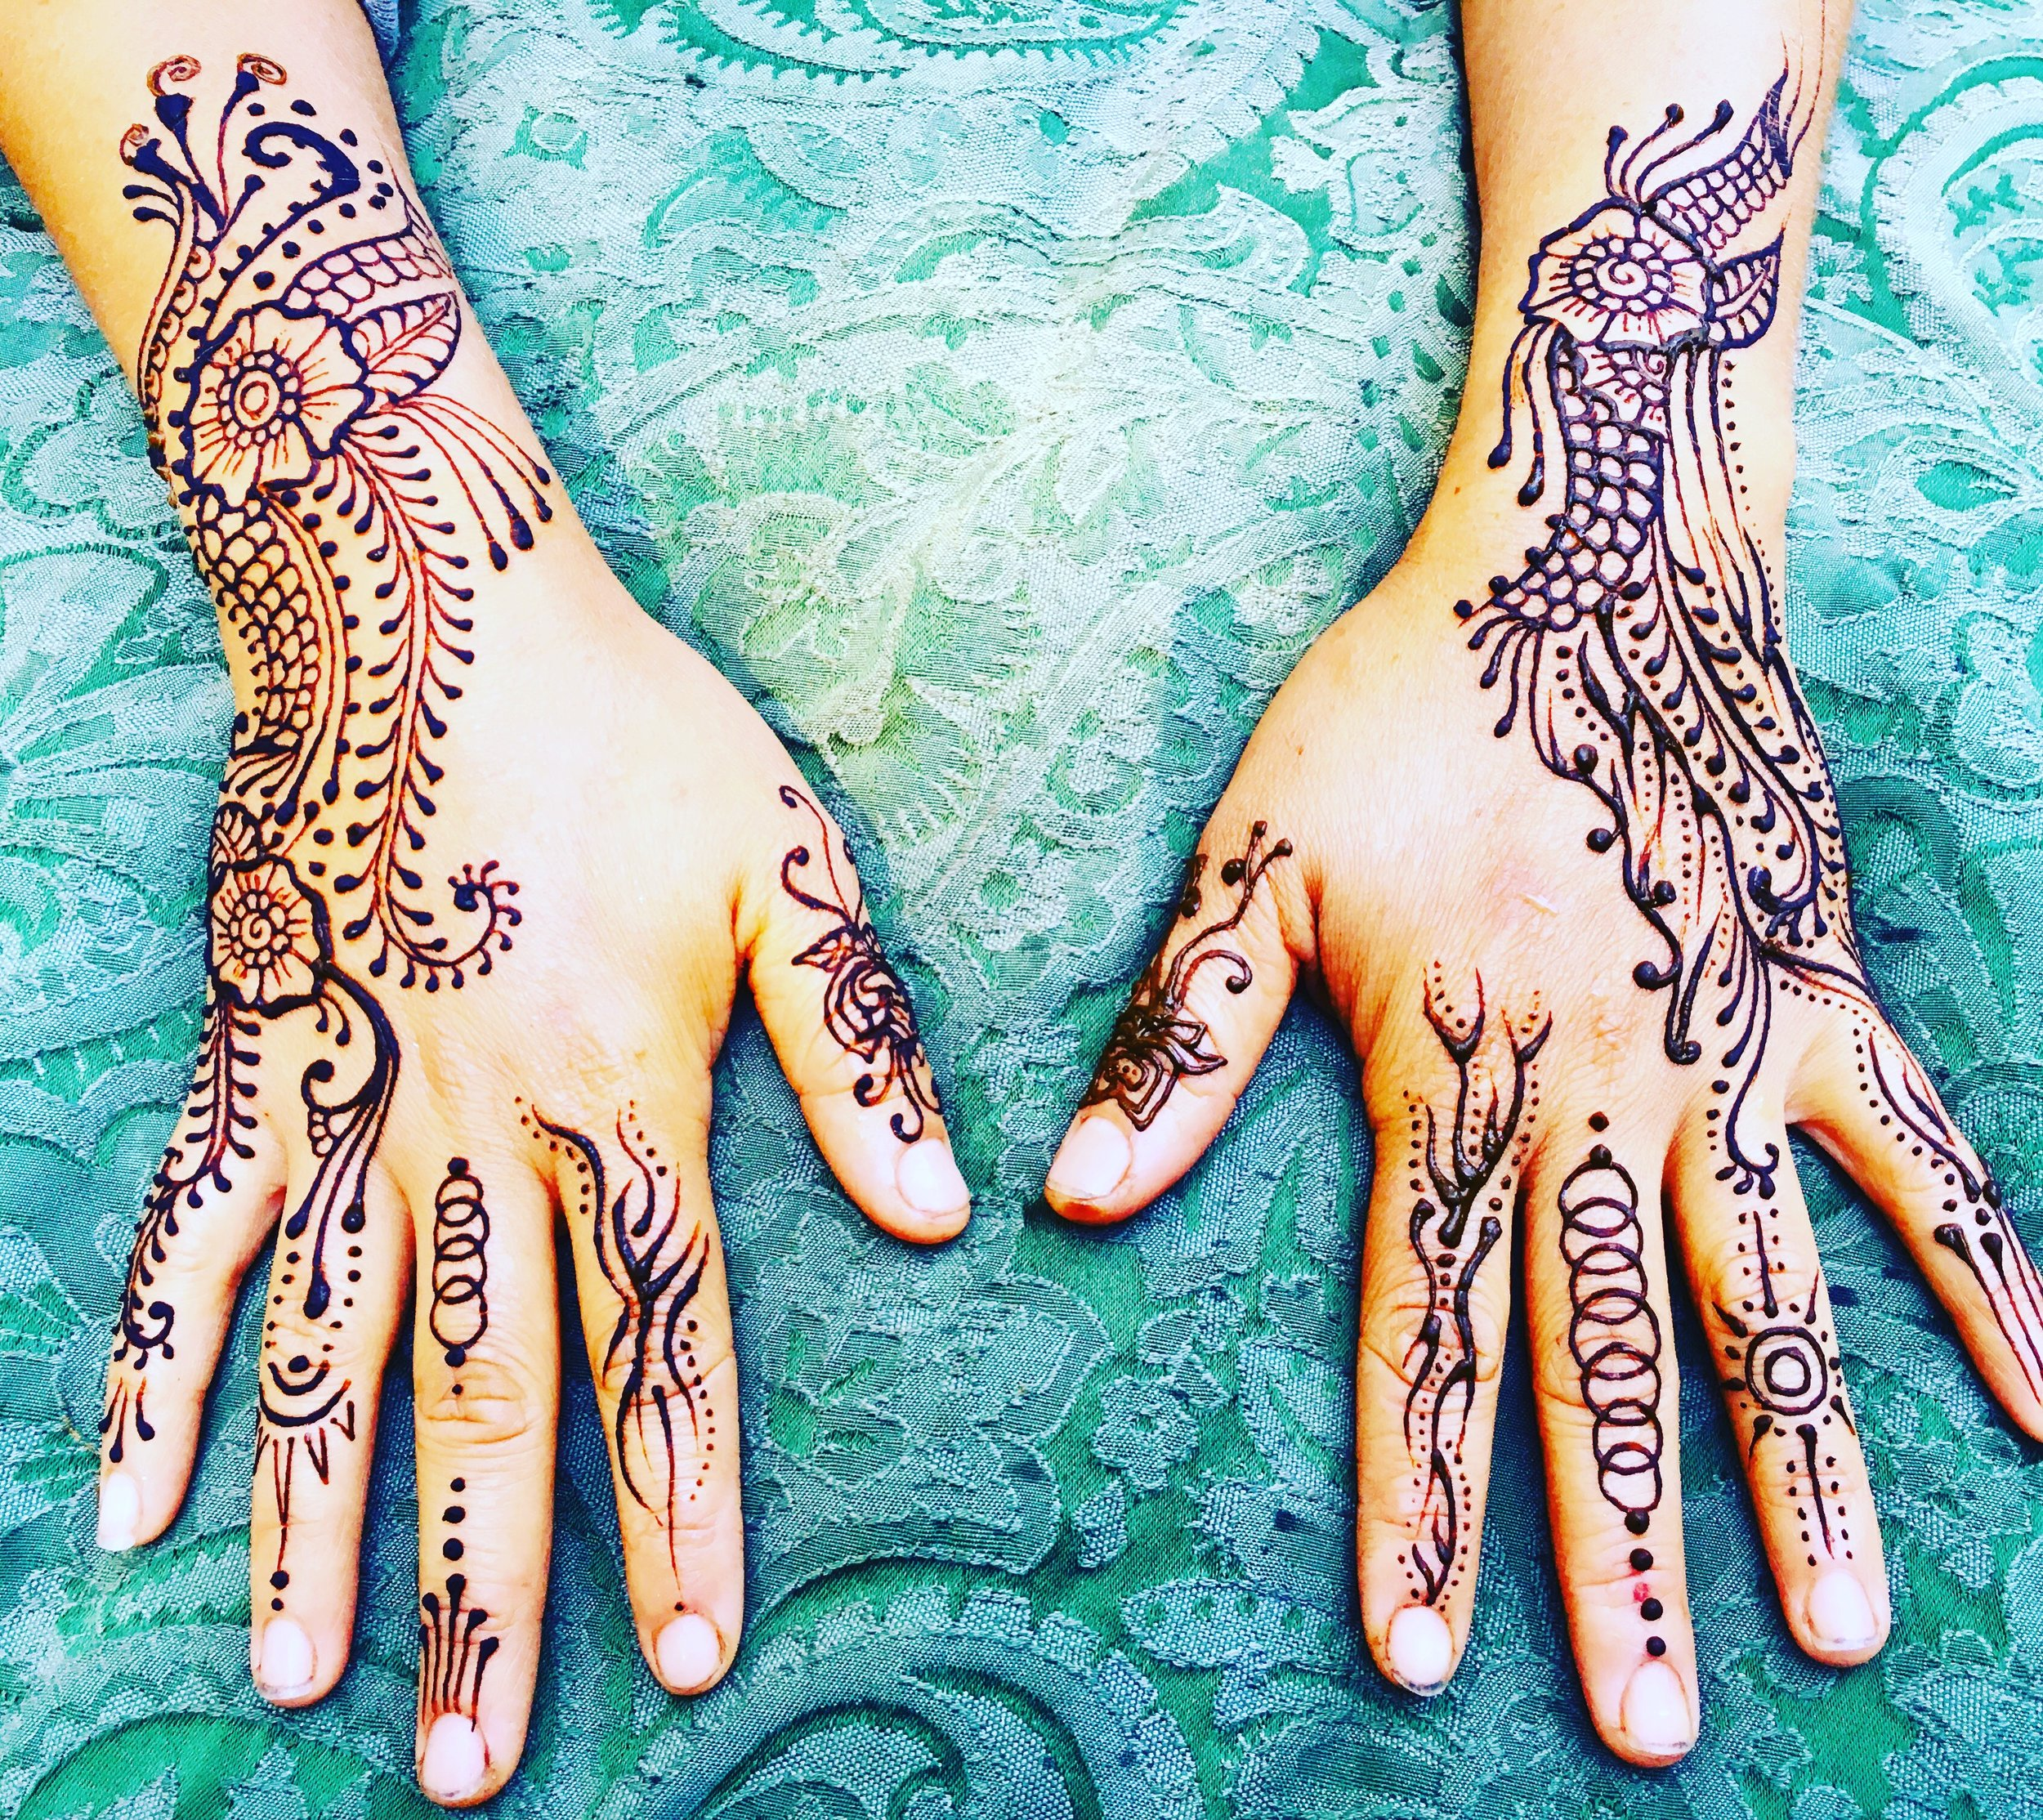 HENNA PARTIES - A great and unique way to celebrate any birthday or special event. A lasting gift for guests to bring home. Henna is a great party favor that will last for upto 2 weeks! Mystic Henna brings several design books to choose from and create custom designs for guests.